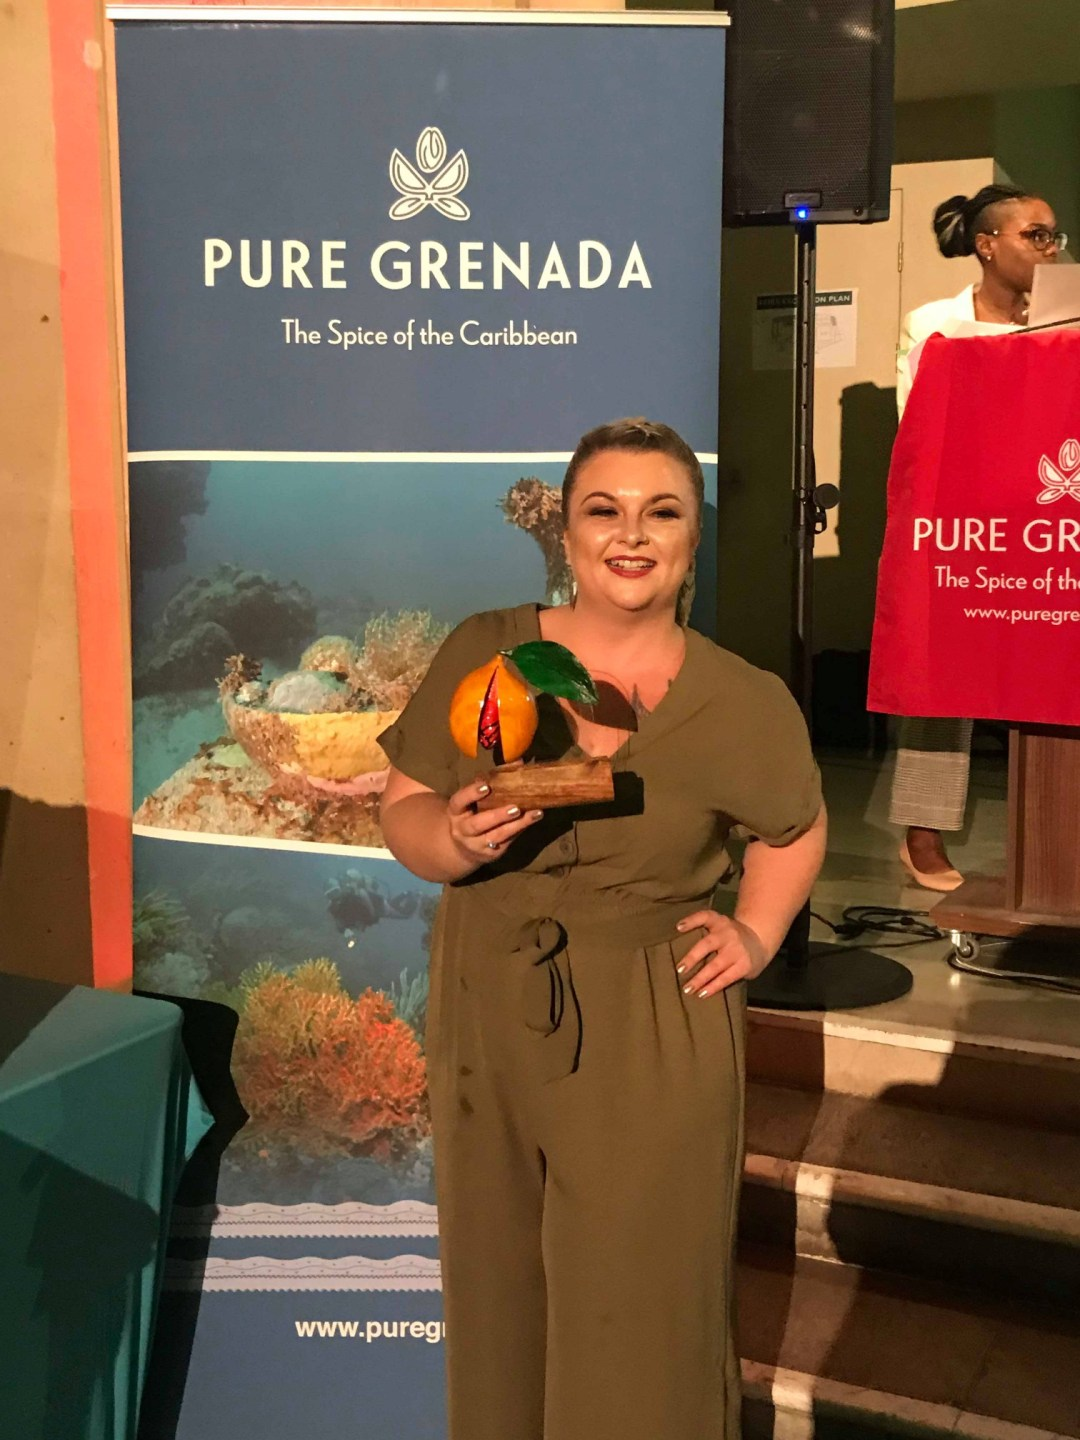 The Rare Welsh Bit is awarded Blogger of the Year by Grenada Tourism Authority for 2018